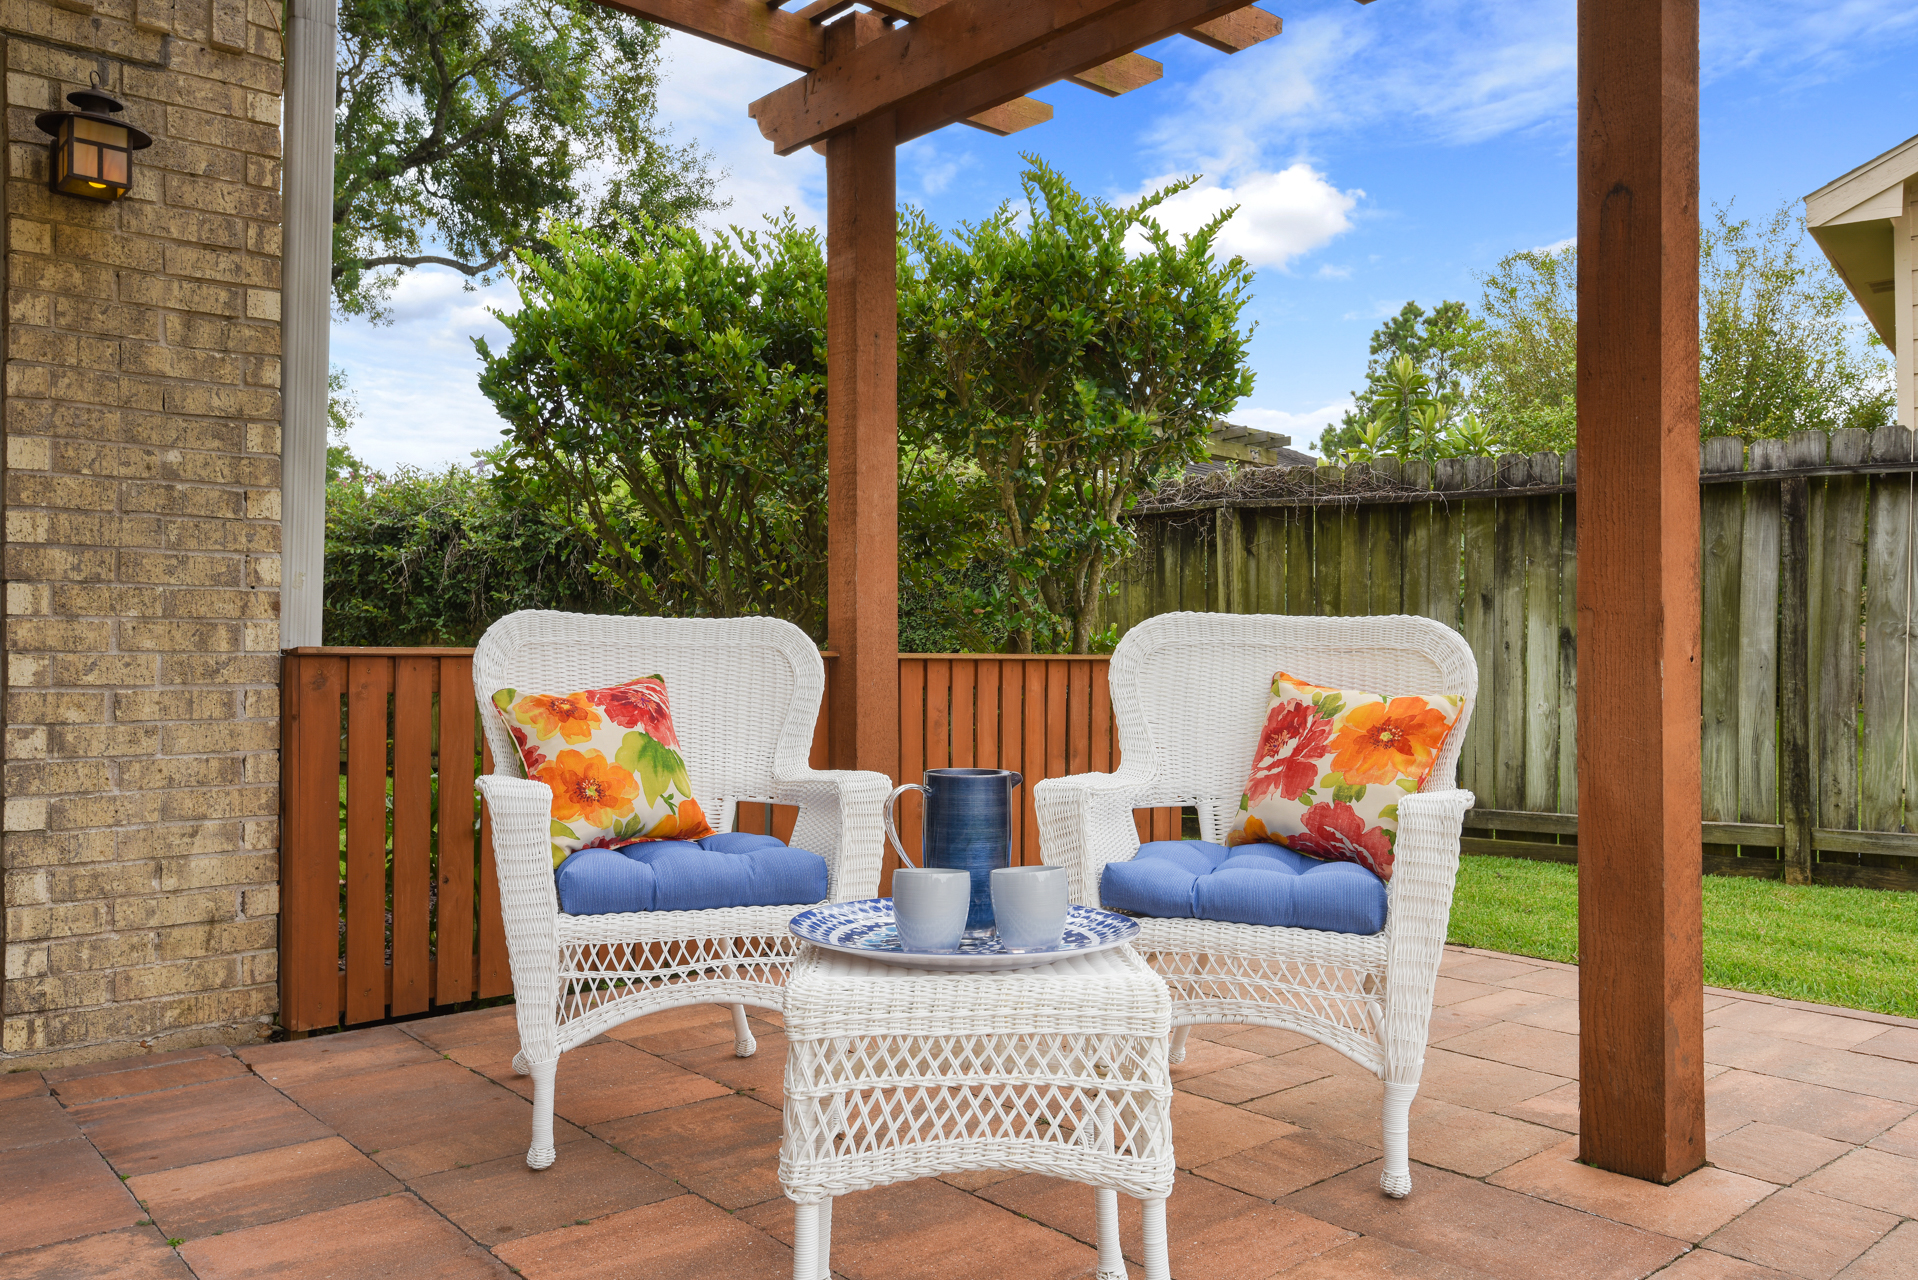 Staging The Nest - Vacant Home Staging - Exterior Front Porch